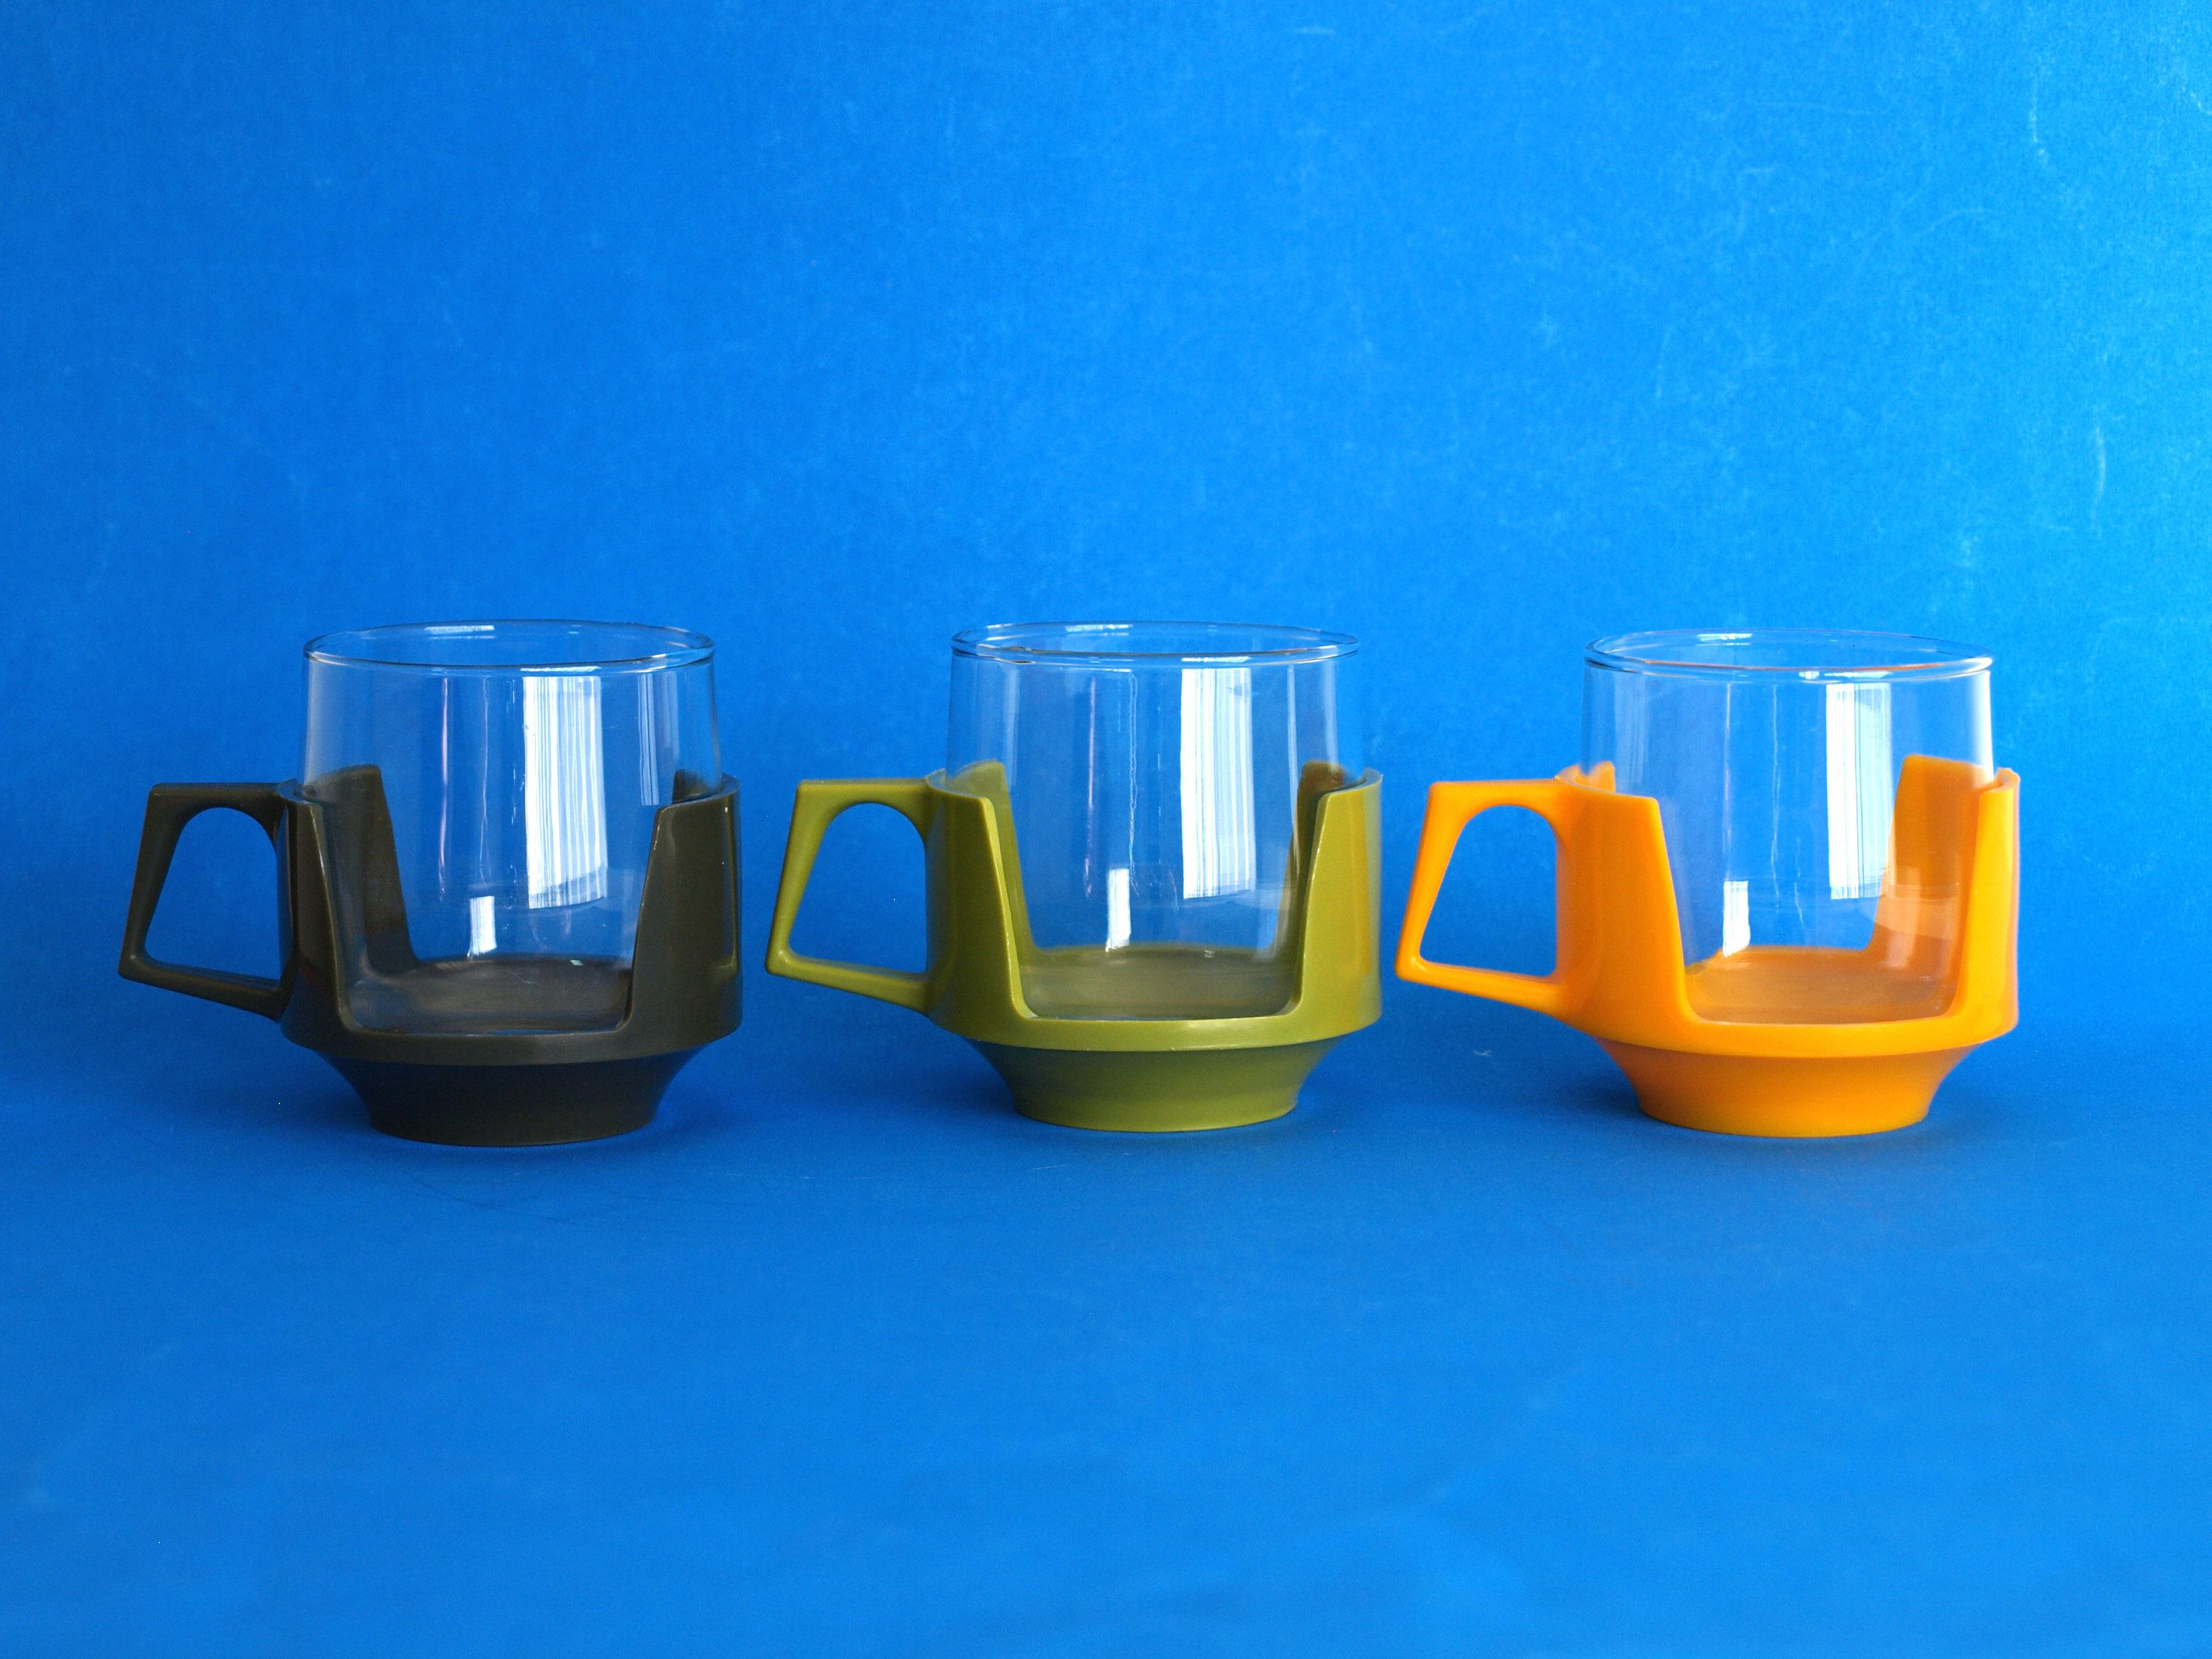 Medium Of Retro Coffee Mugs